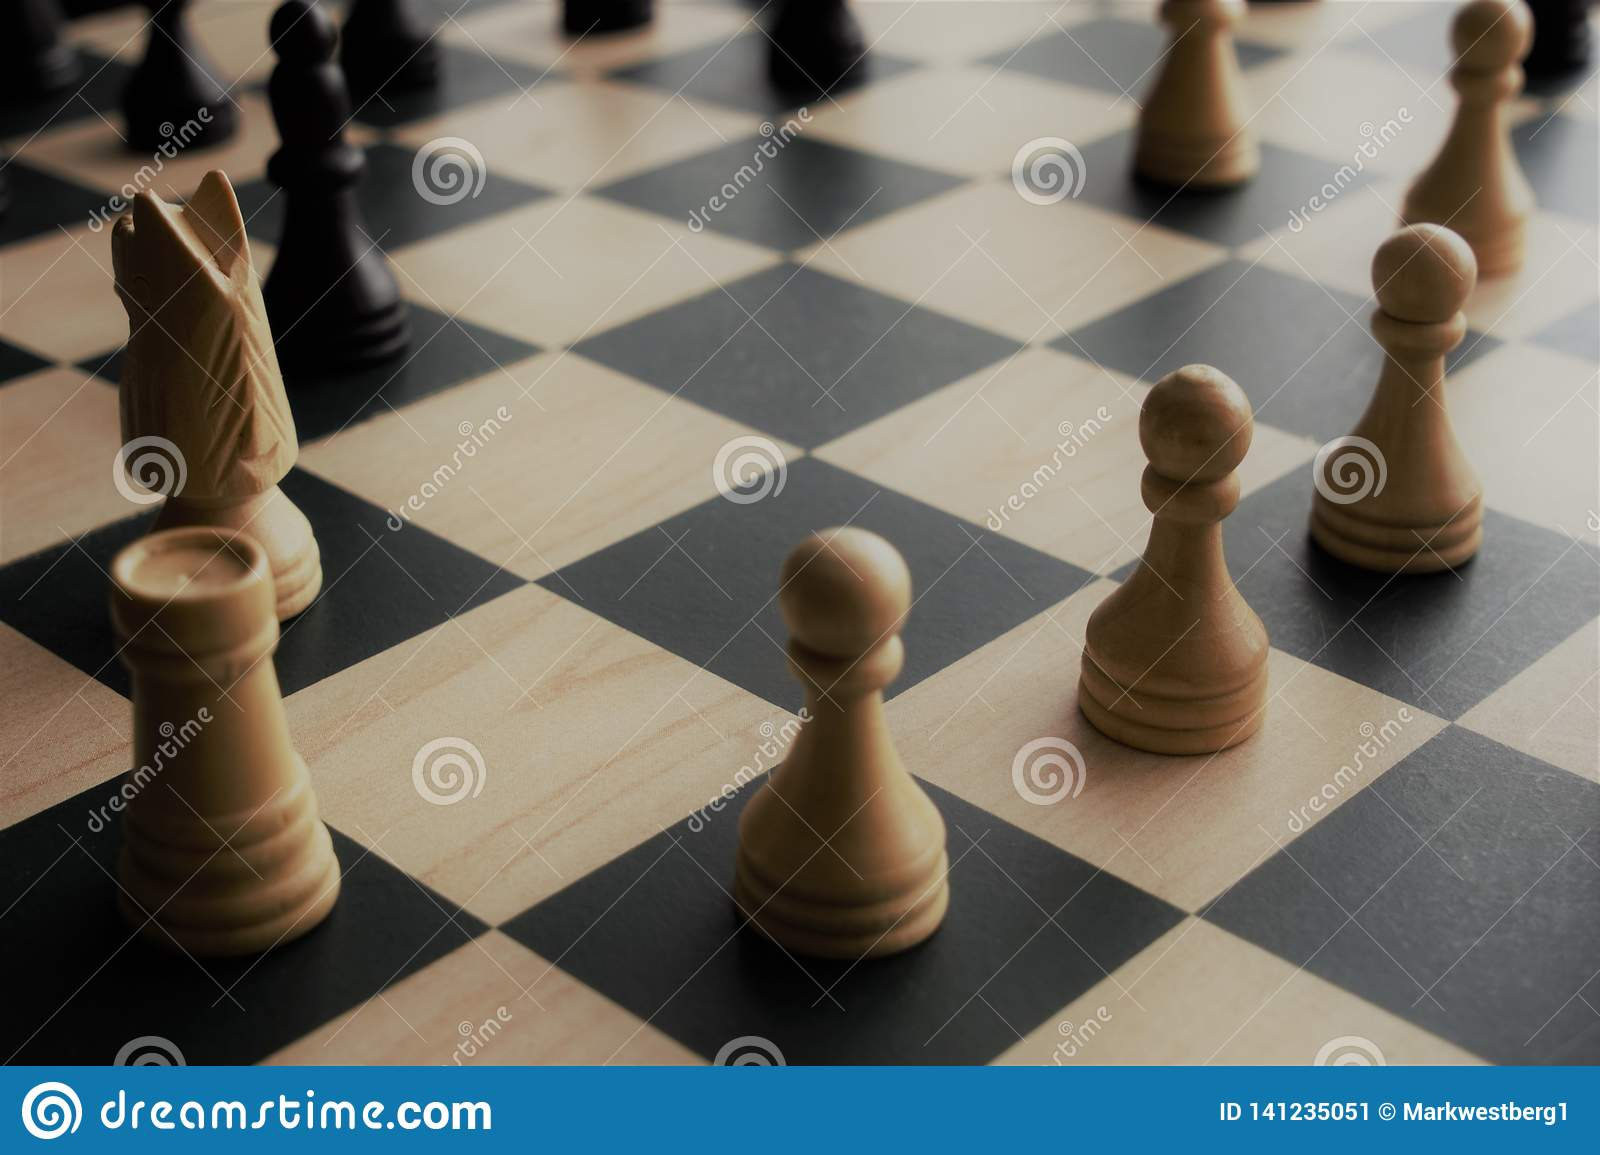 Closeup image of chess pieces